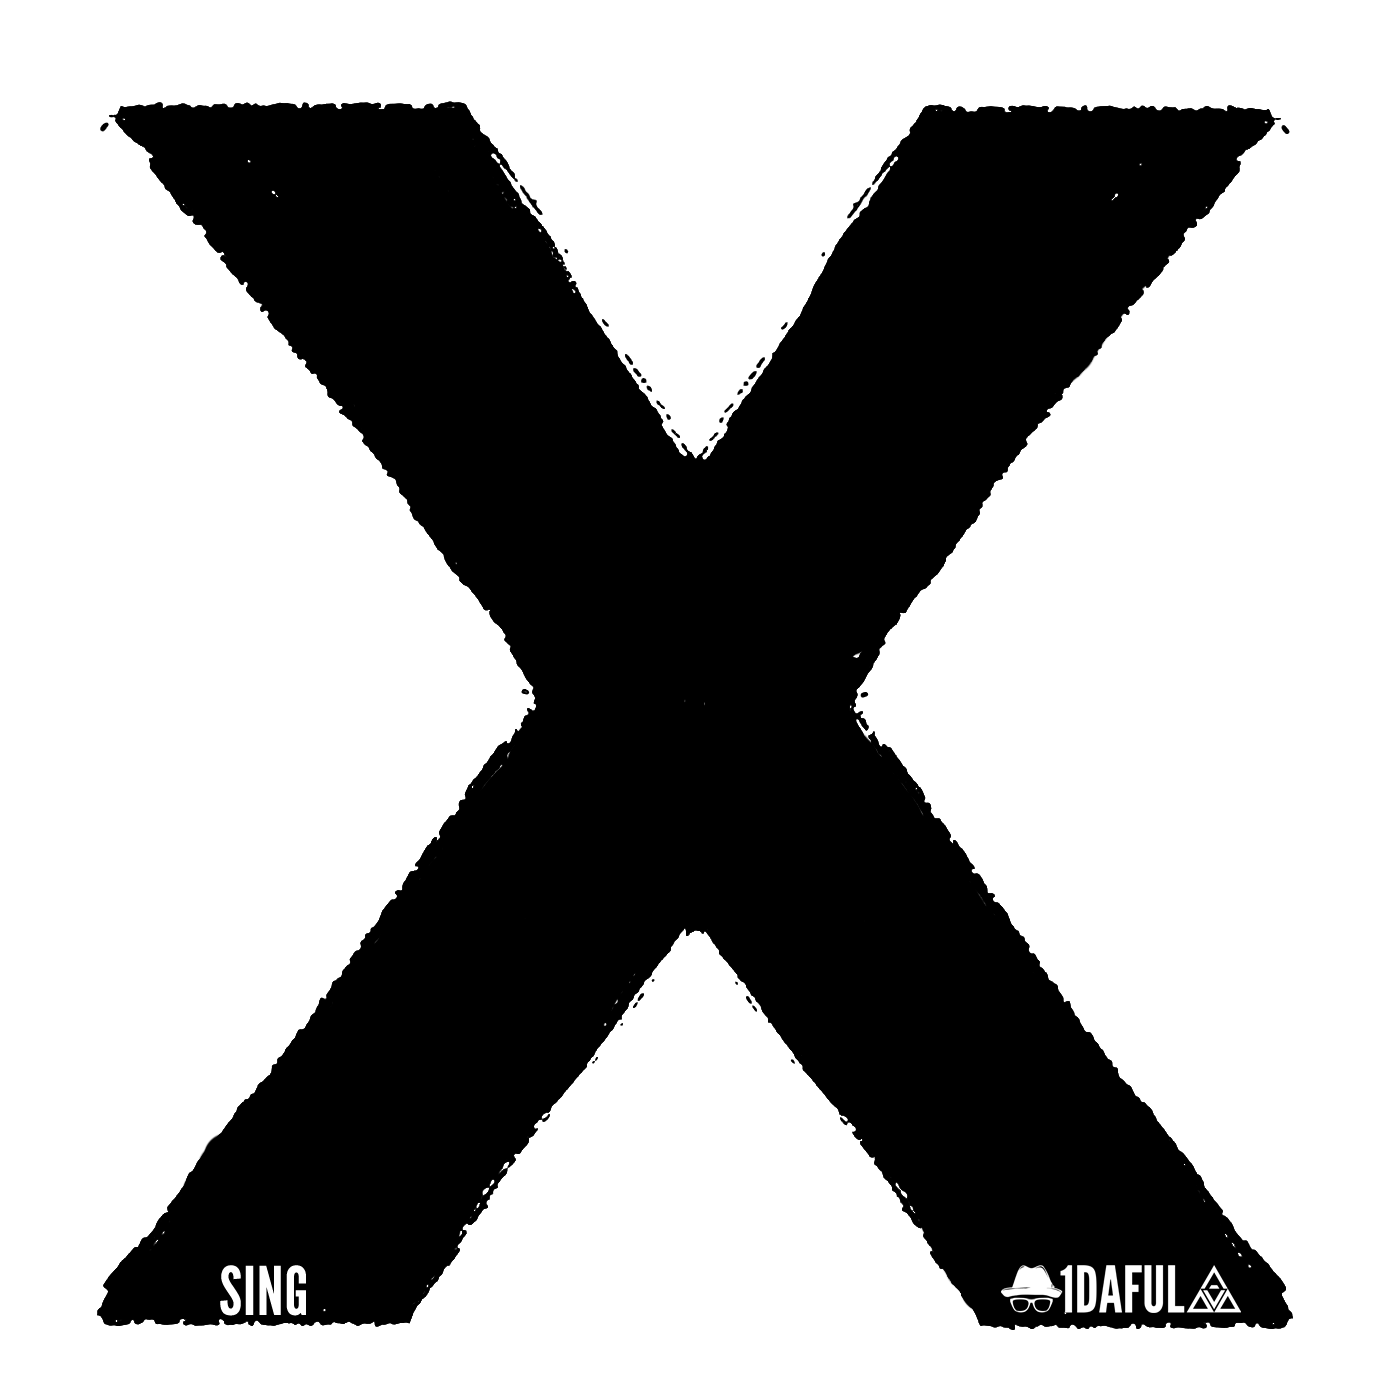 Ed Sheeran - Sing (1DAFUL Remix) - Artwork 001